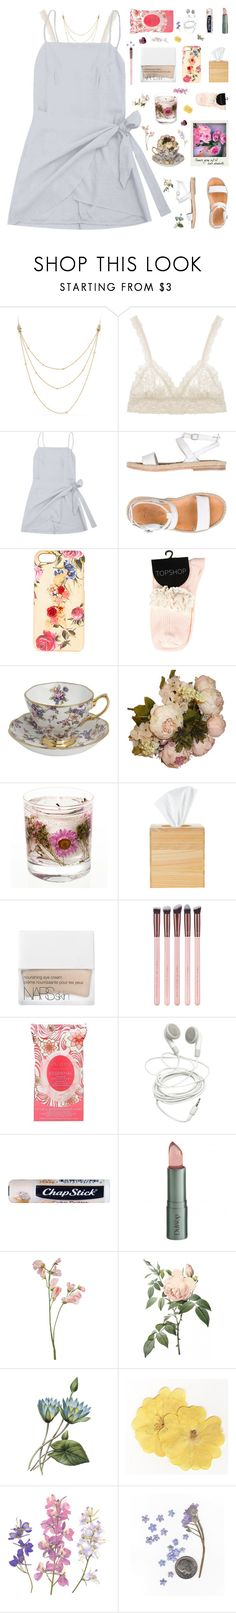 """delaney ♡"" by my-pink-wings ❤ liked on Polyvore featuring David Yurman, Hanky Panky, n.d.c., Dolce&Gabbana, Royal Albert, Puji, NARS Cosmetics, Luxie, Pacifica and Chapstick"